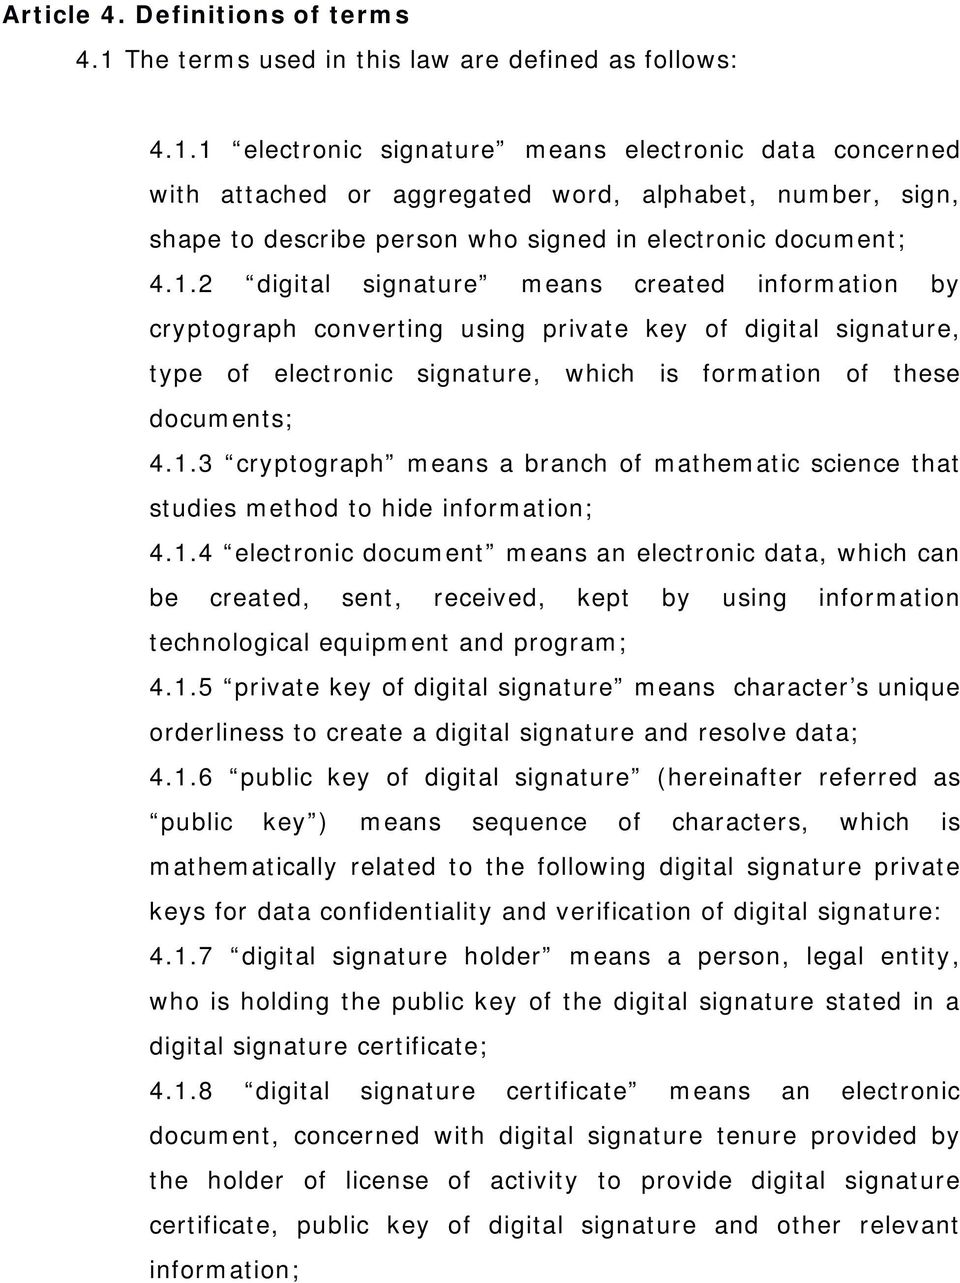 1 electronic signature means electronic data concerned with attached or aggregated word, alphabet, number, sign, shape to describe person who signed in electronic document; 4.1.2 digital signature means created information by cryptograph converting using private key of digital signature, type of electronic signature, which is formation of these documents; 4.